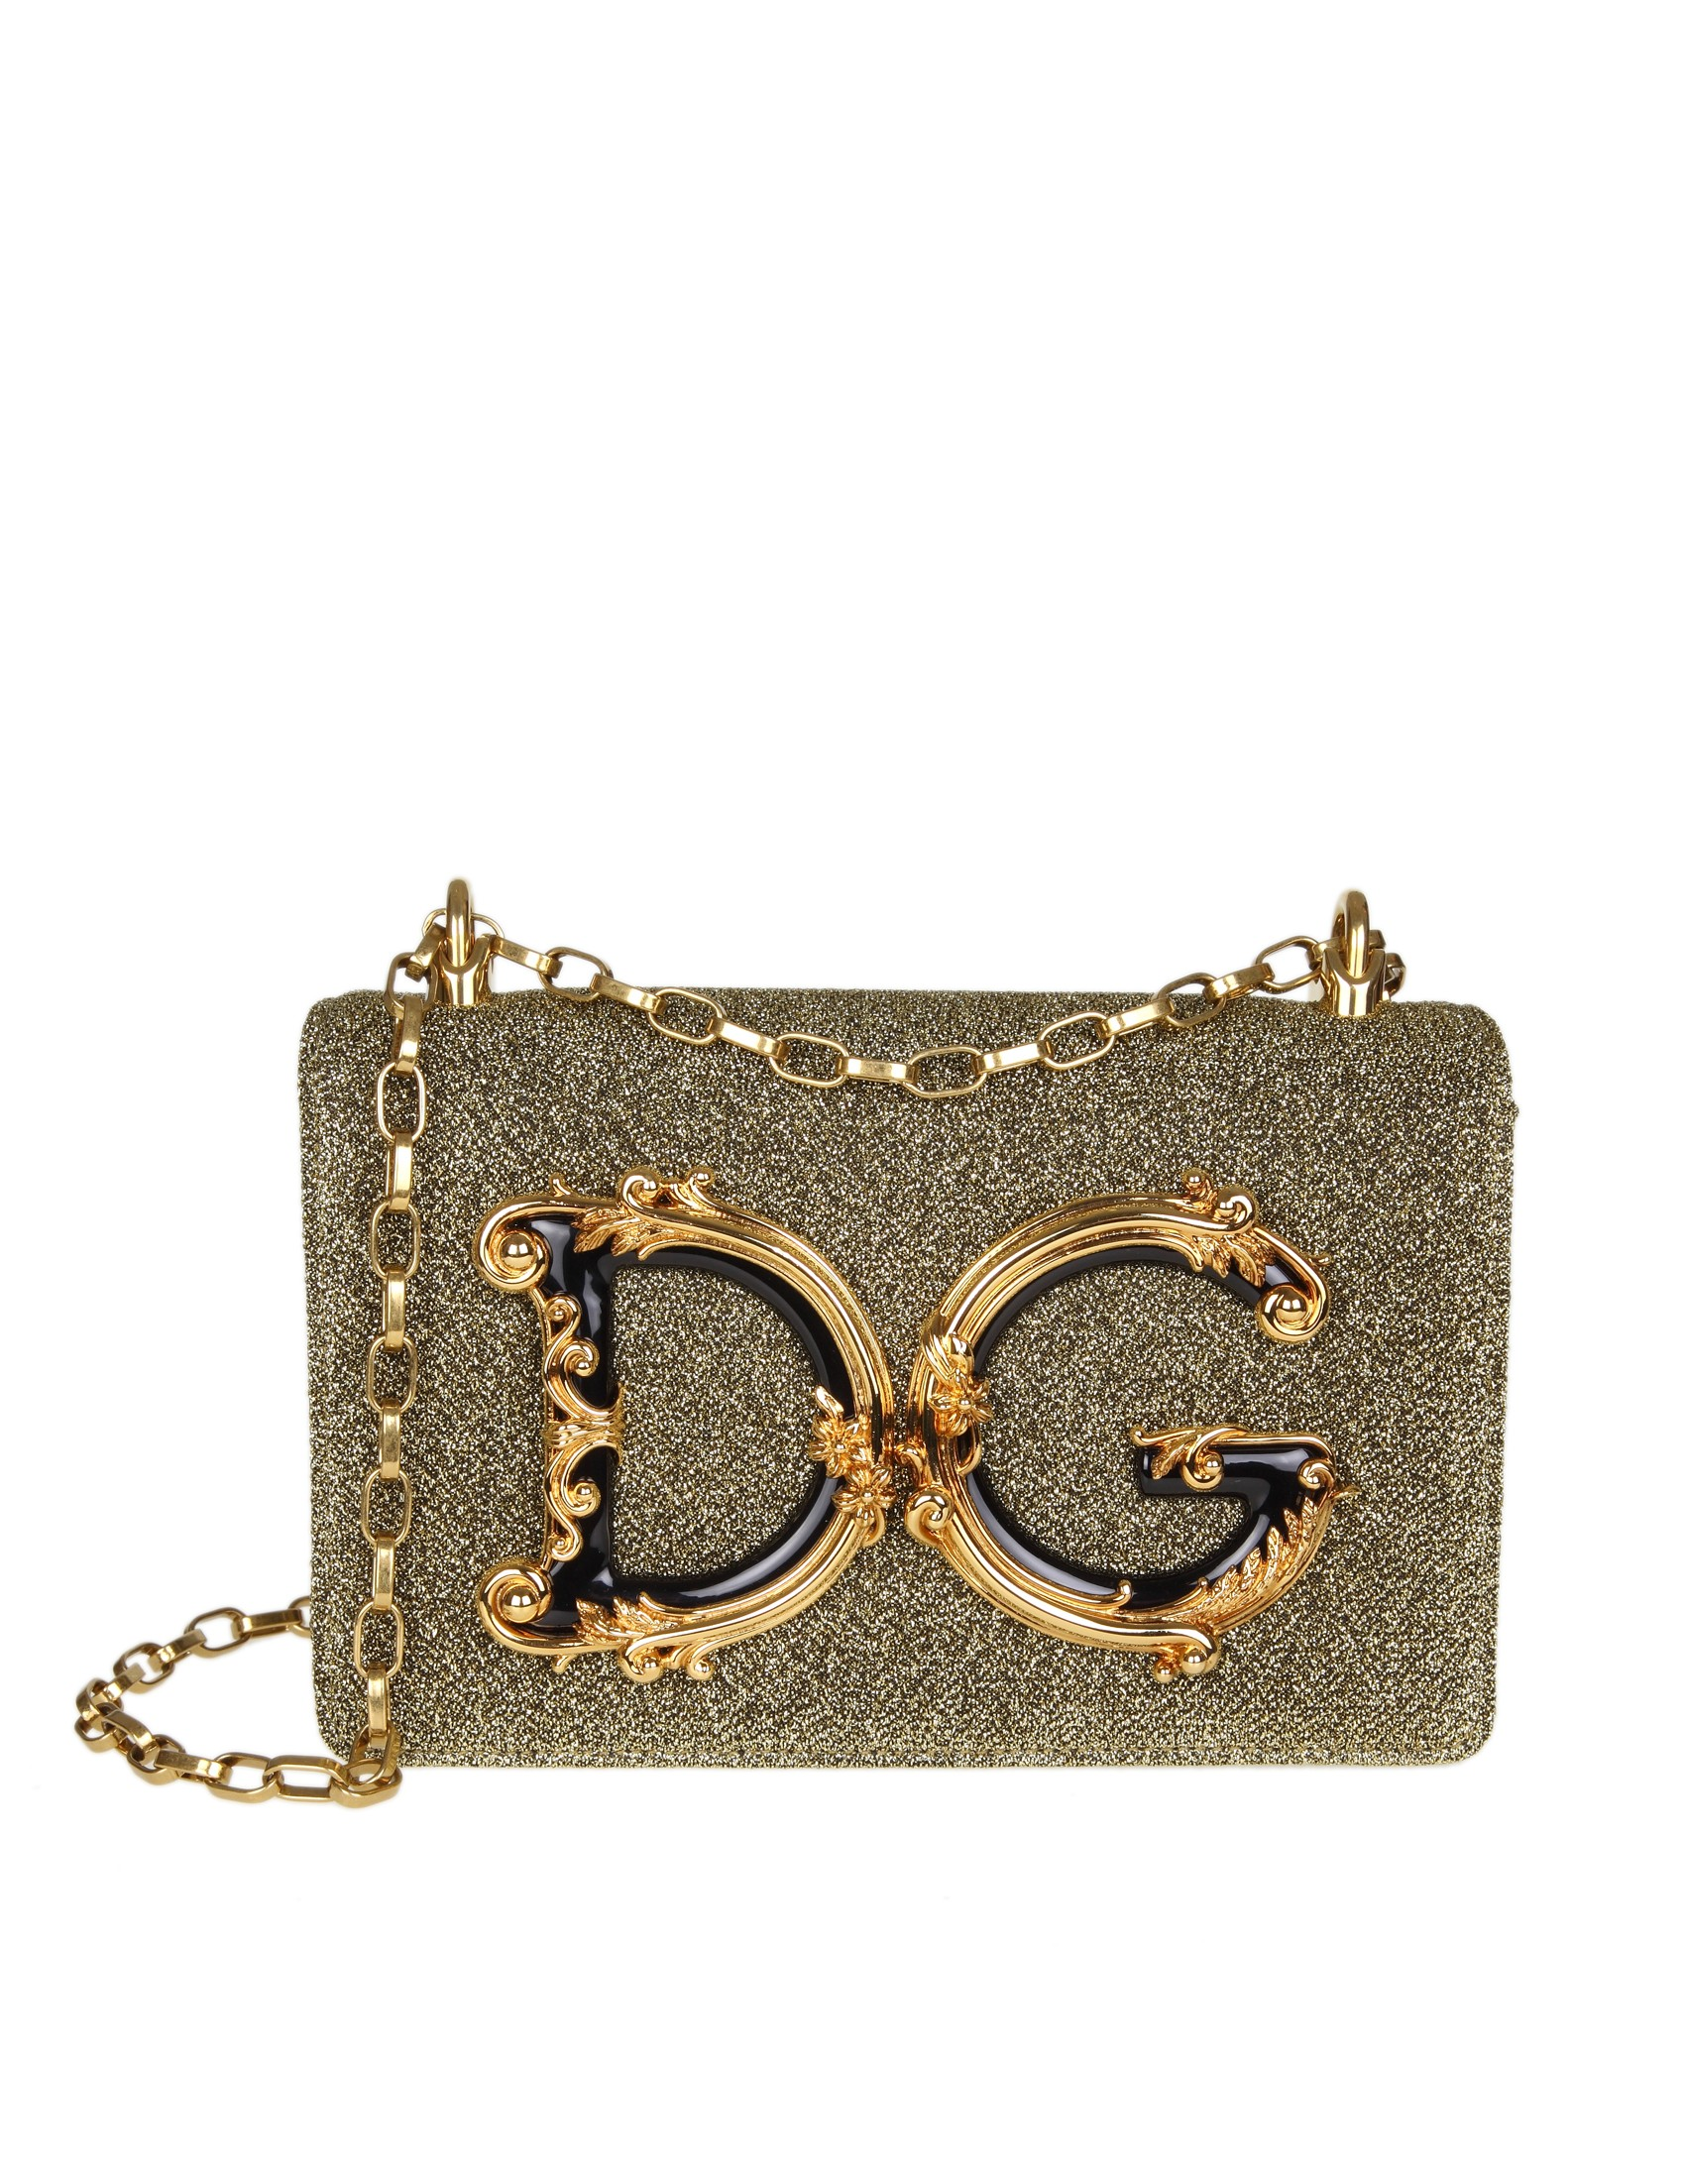 b555e2317592 Shoulder bag in lurex fabric. Colour gold. DG logo in baroque style. Front  flap with hidden closure with magnet. Chain shoulder strap in antiqued gold  color